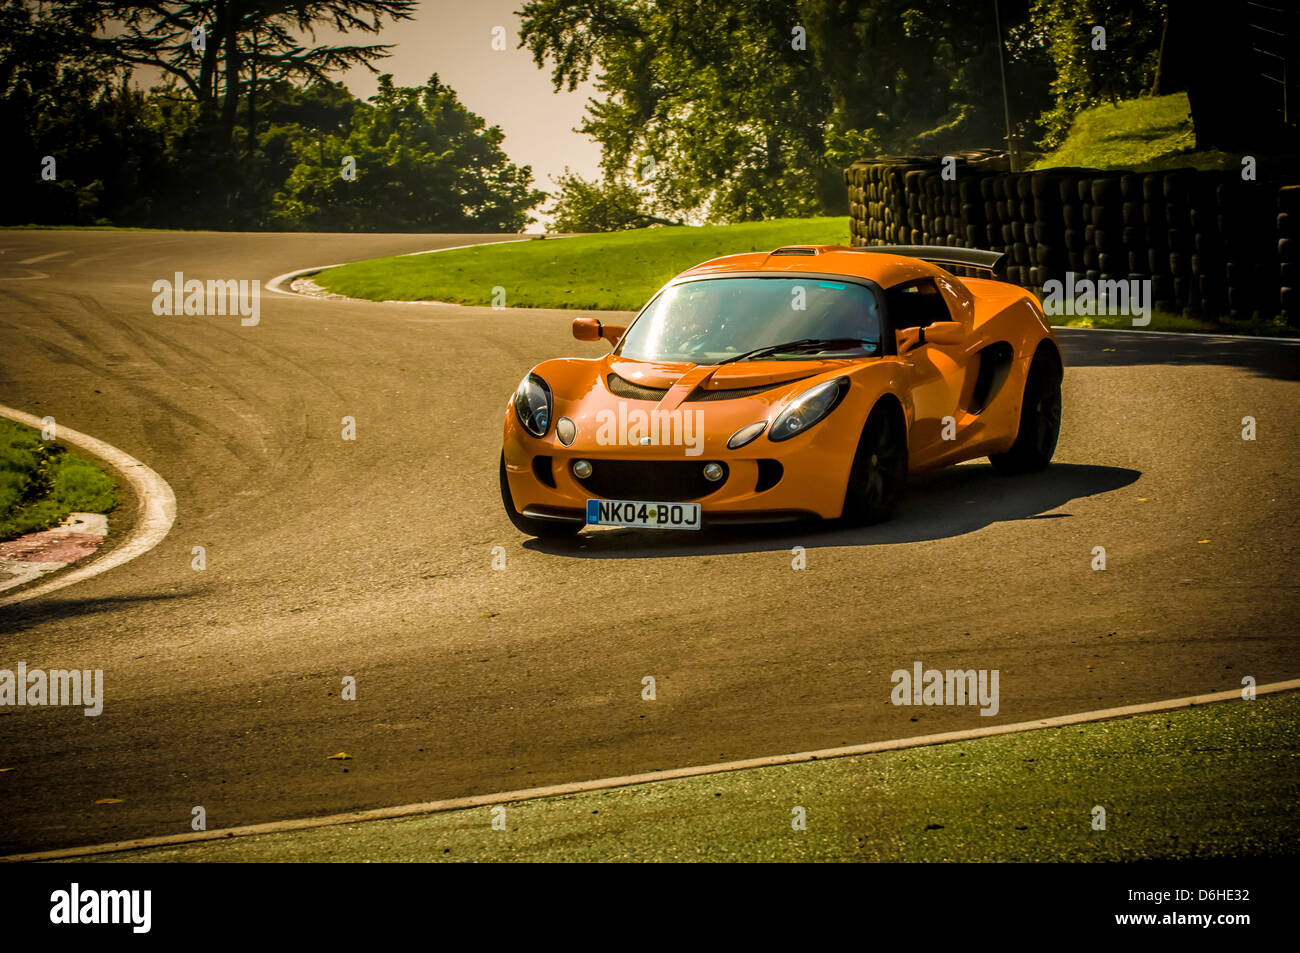 Orange Lotus Exige Car At Cadwell Park Racetrack   Stock Image